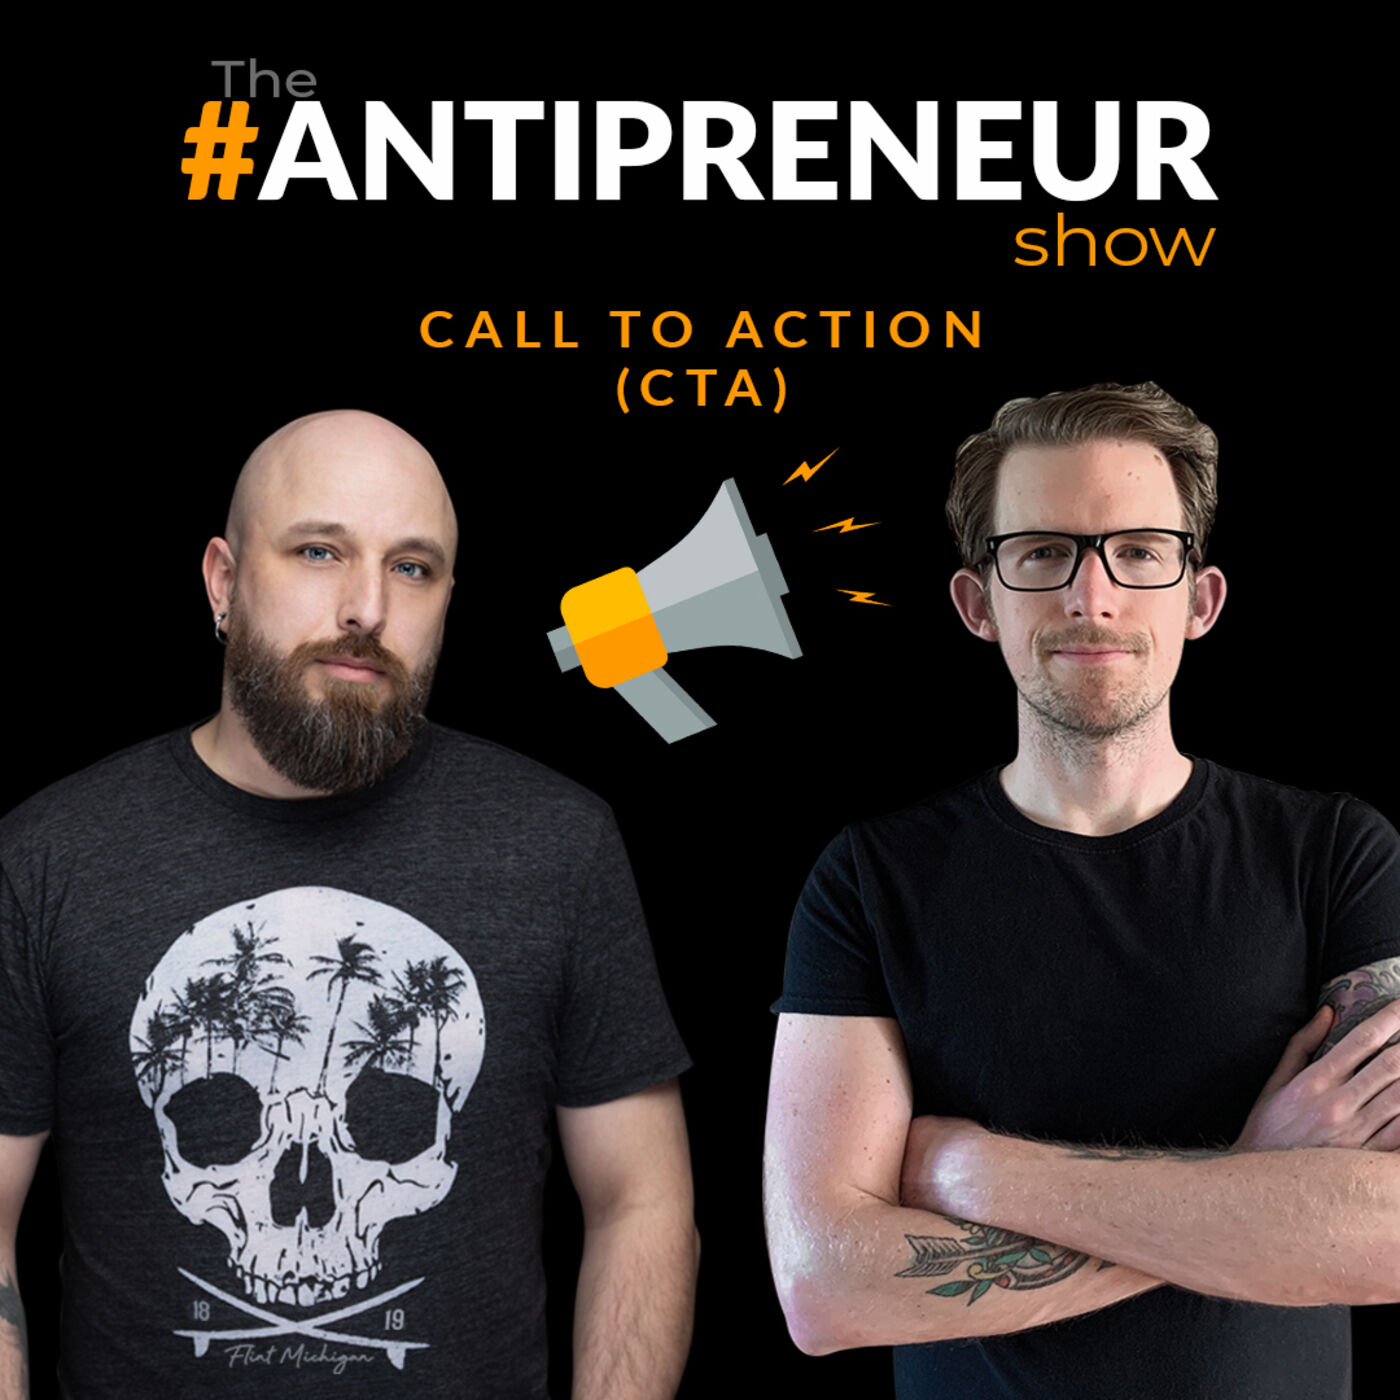 #27 - Call To Action (CTA)